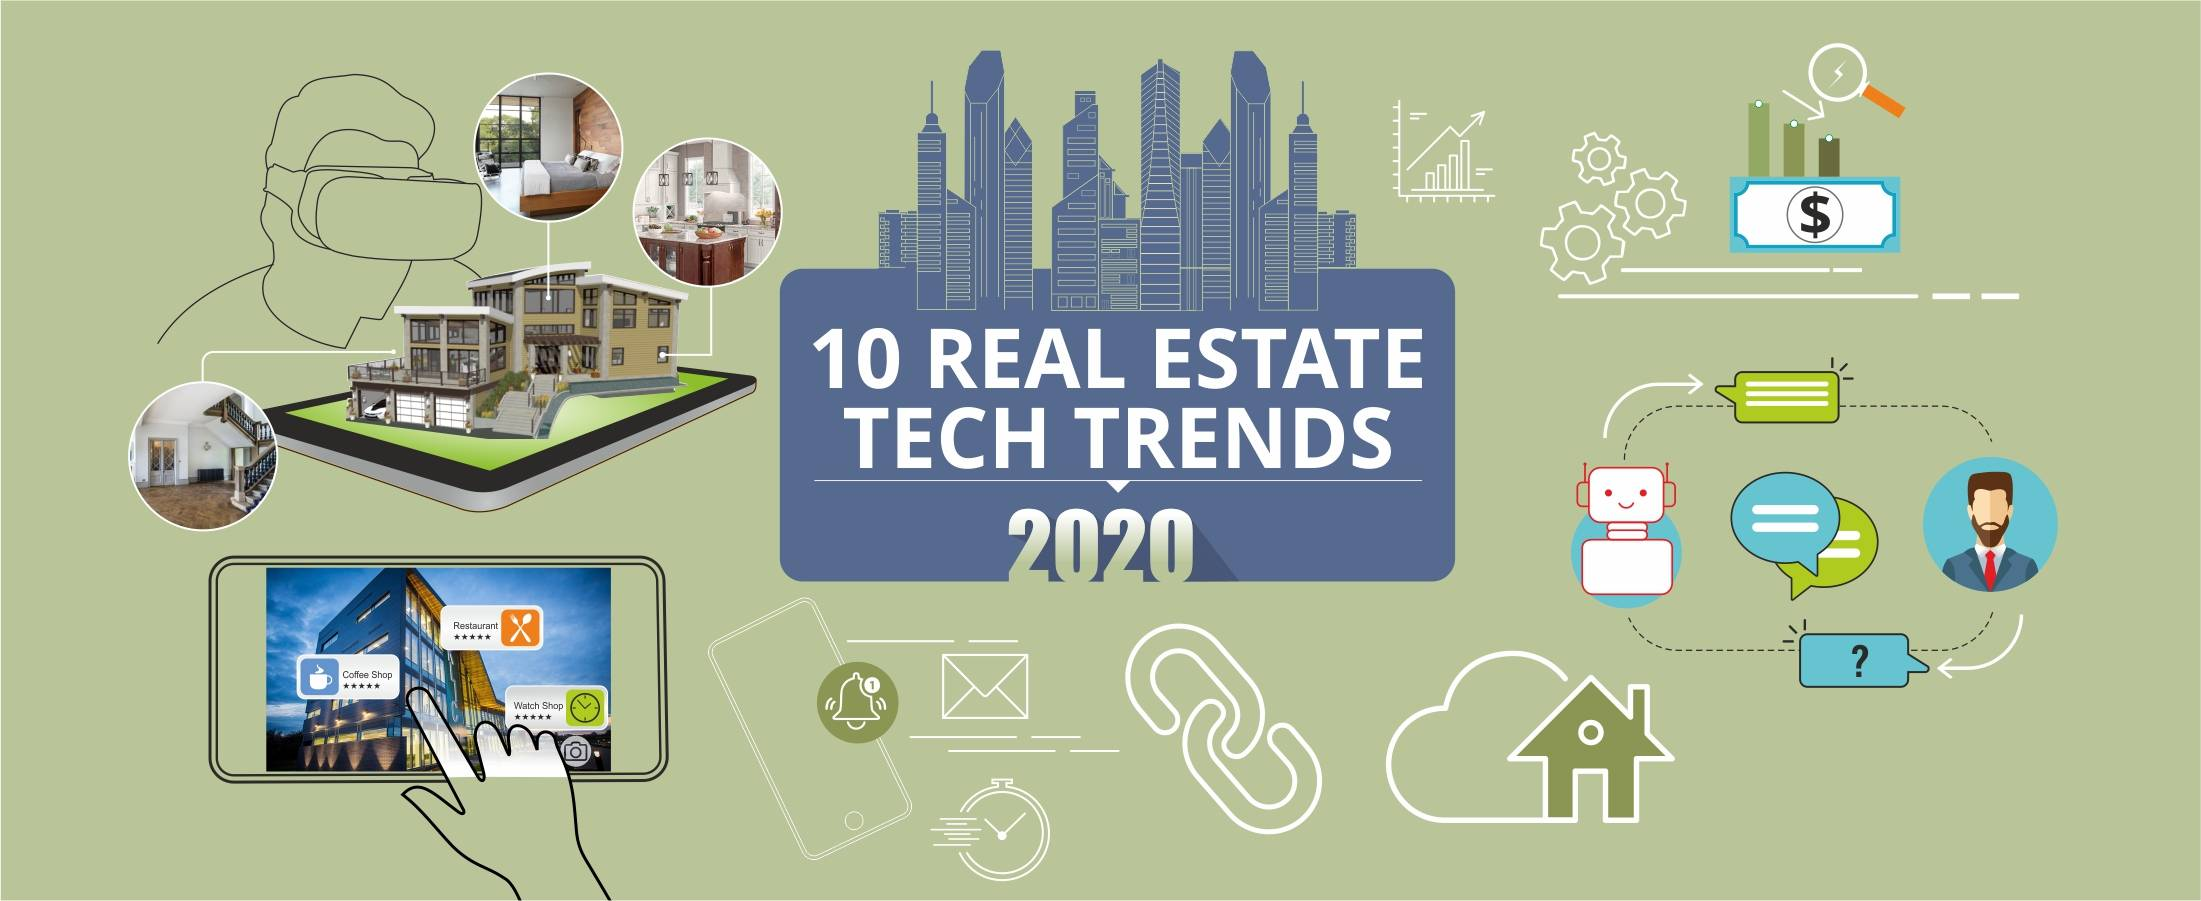 Mobifilia - 10 Real Estate Tech Trends to Follow in 2020